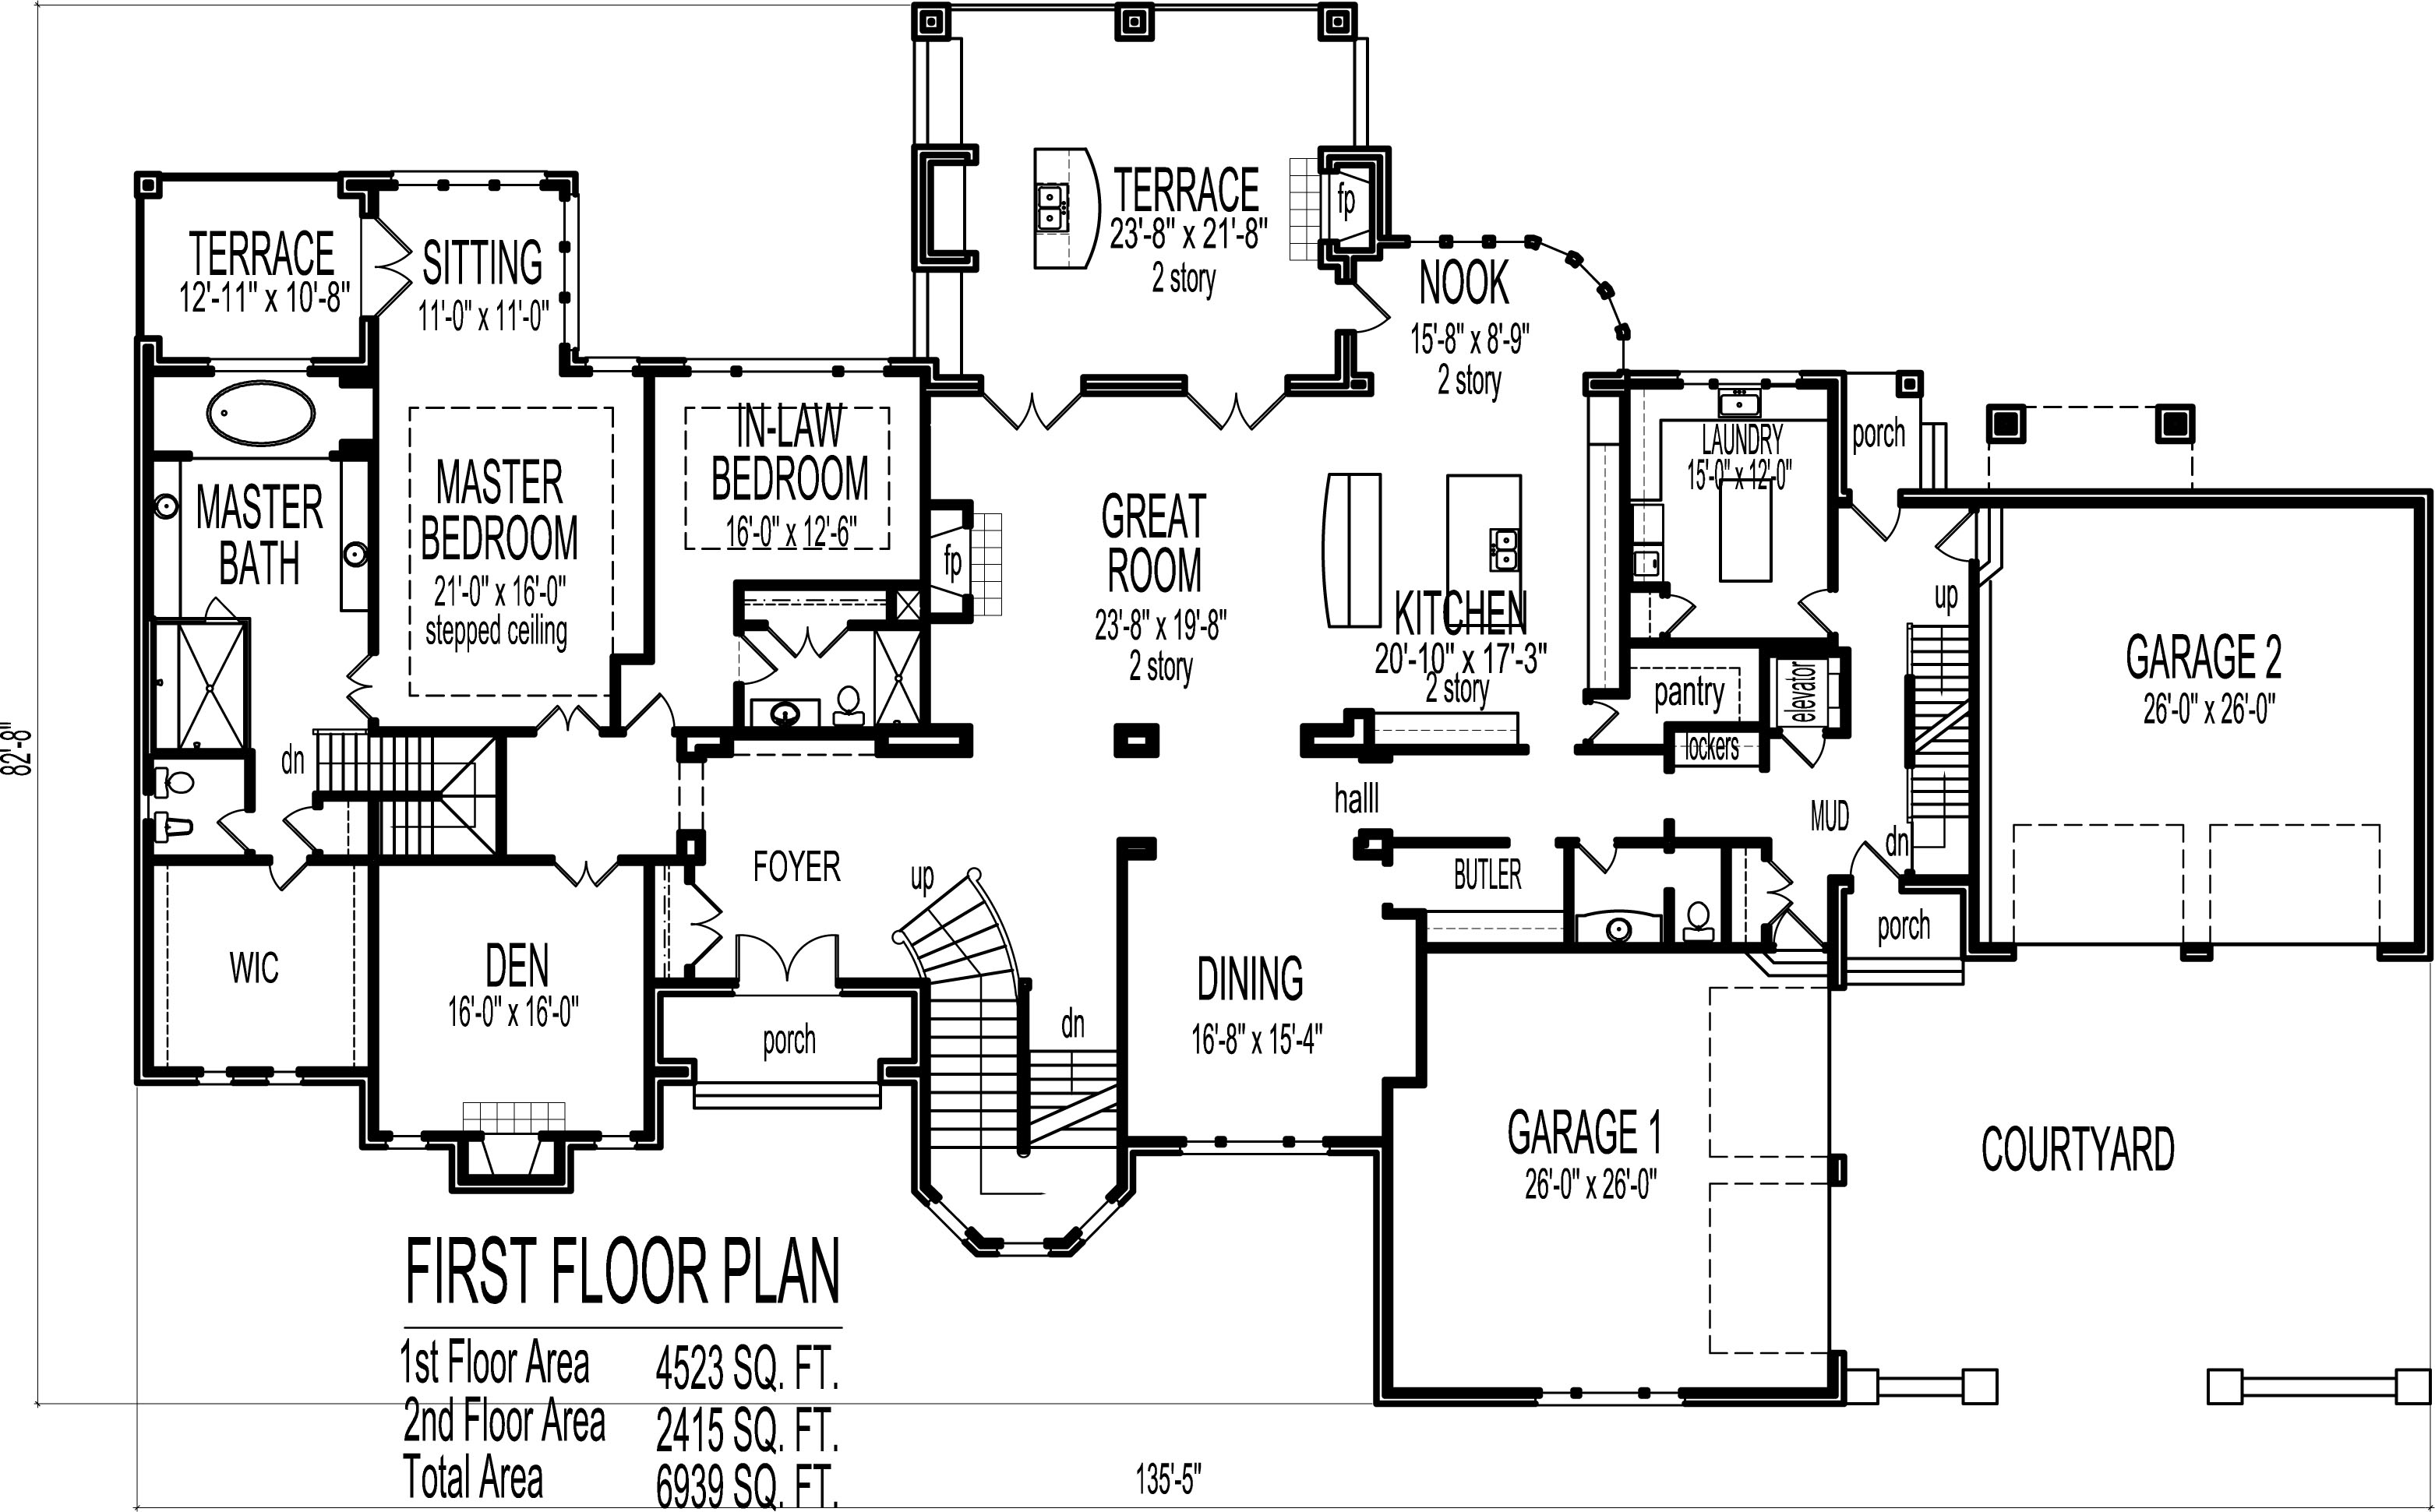 Mansion House Floor Plans Blueprints Bedroom Story Sq Ft Bedroom Bathroom Dream Home Plans Indianapolis Ft Wayne Evansville Indiana South Bend Lafayette Bloomington